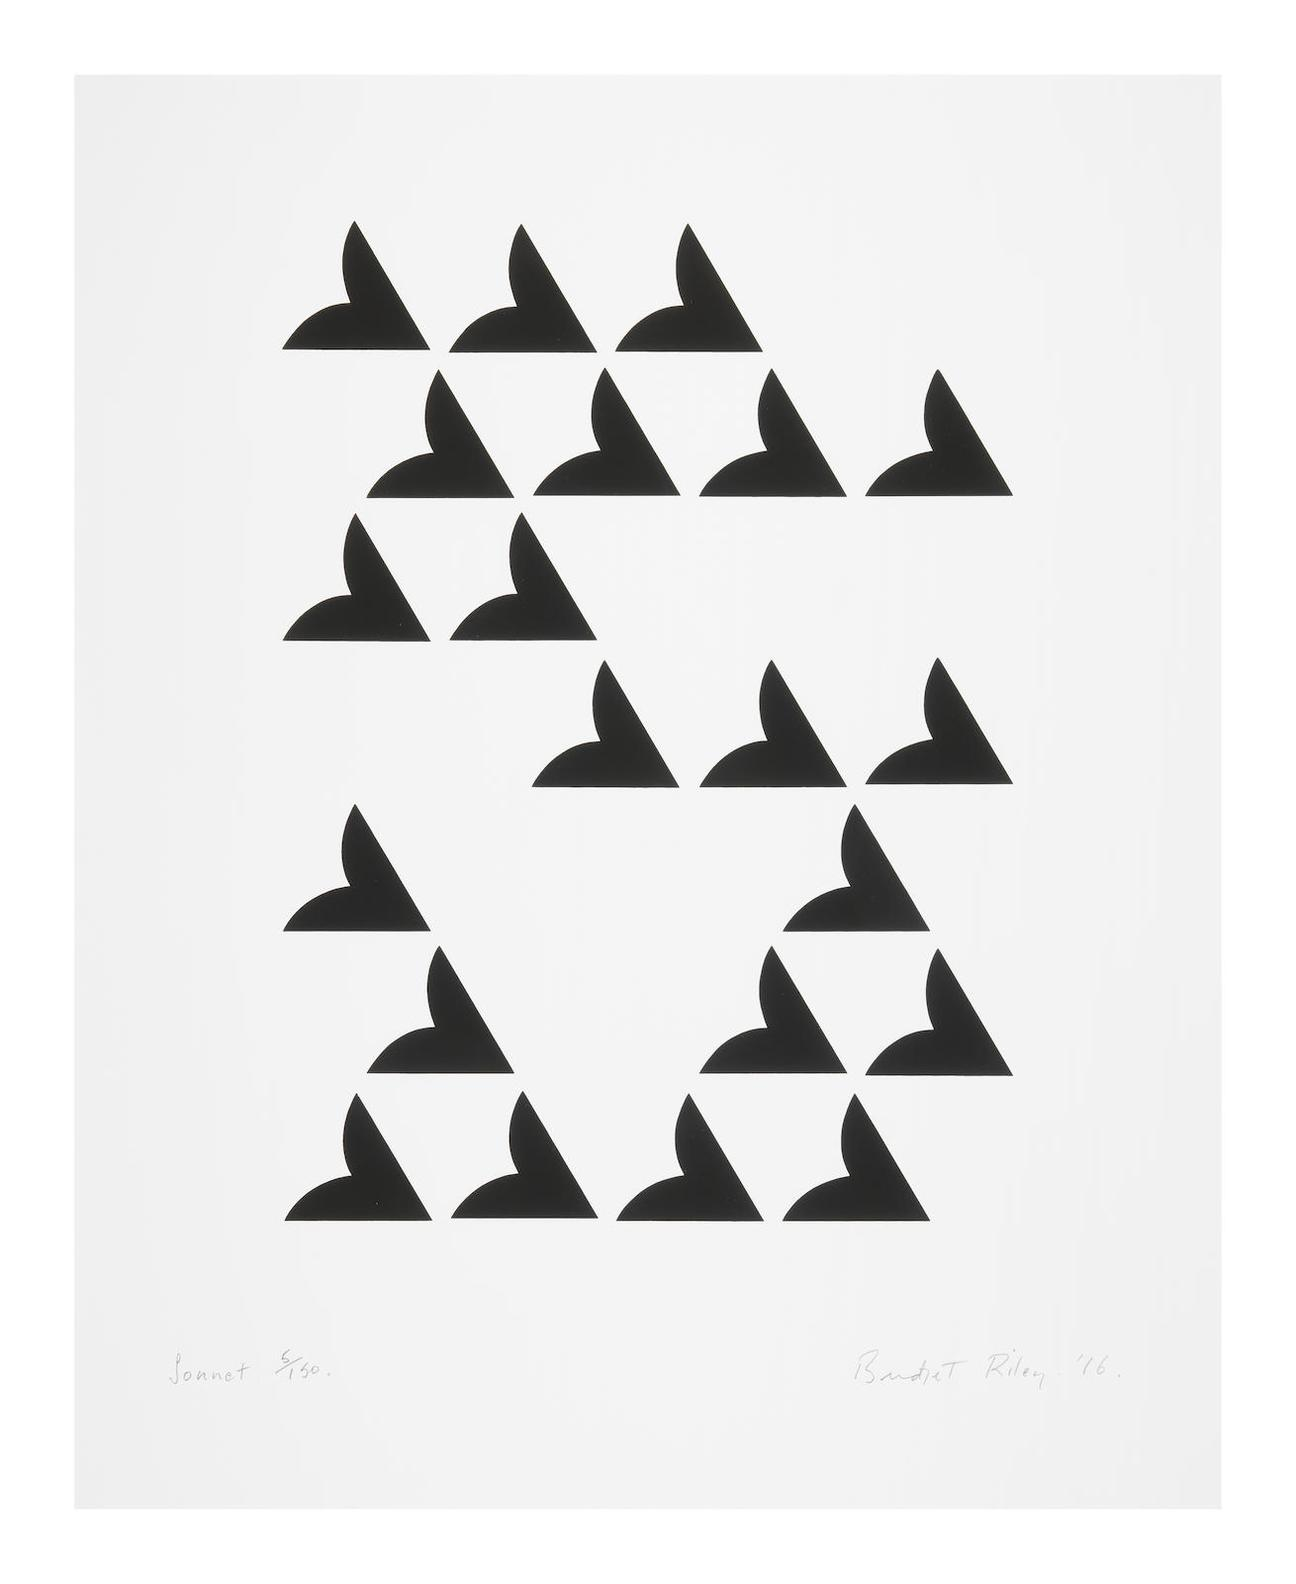 Bridget Riley-Sonnet-2016